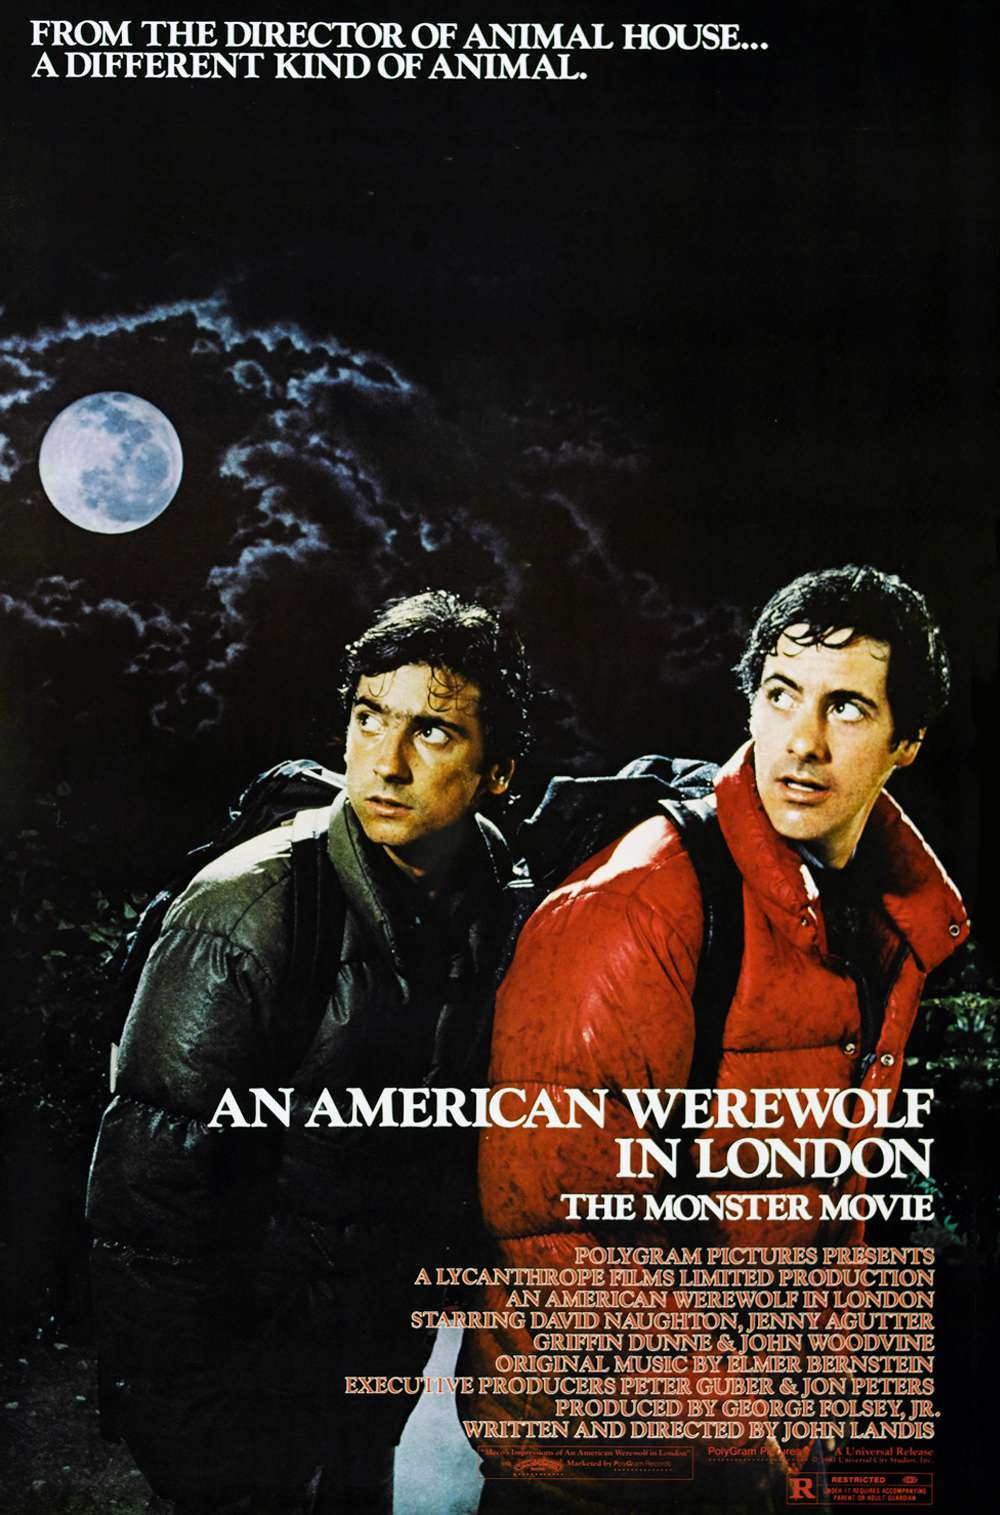 Poster for An American Werewolf in London (1981)